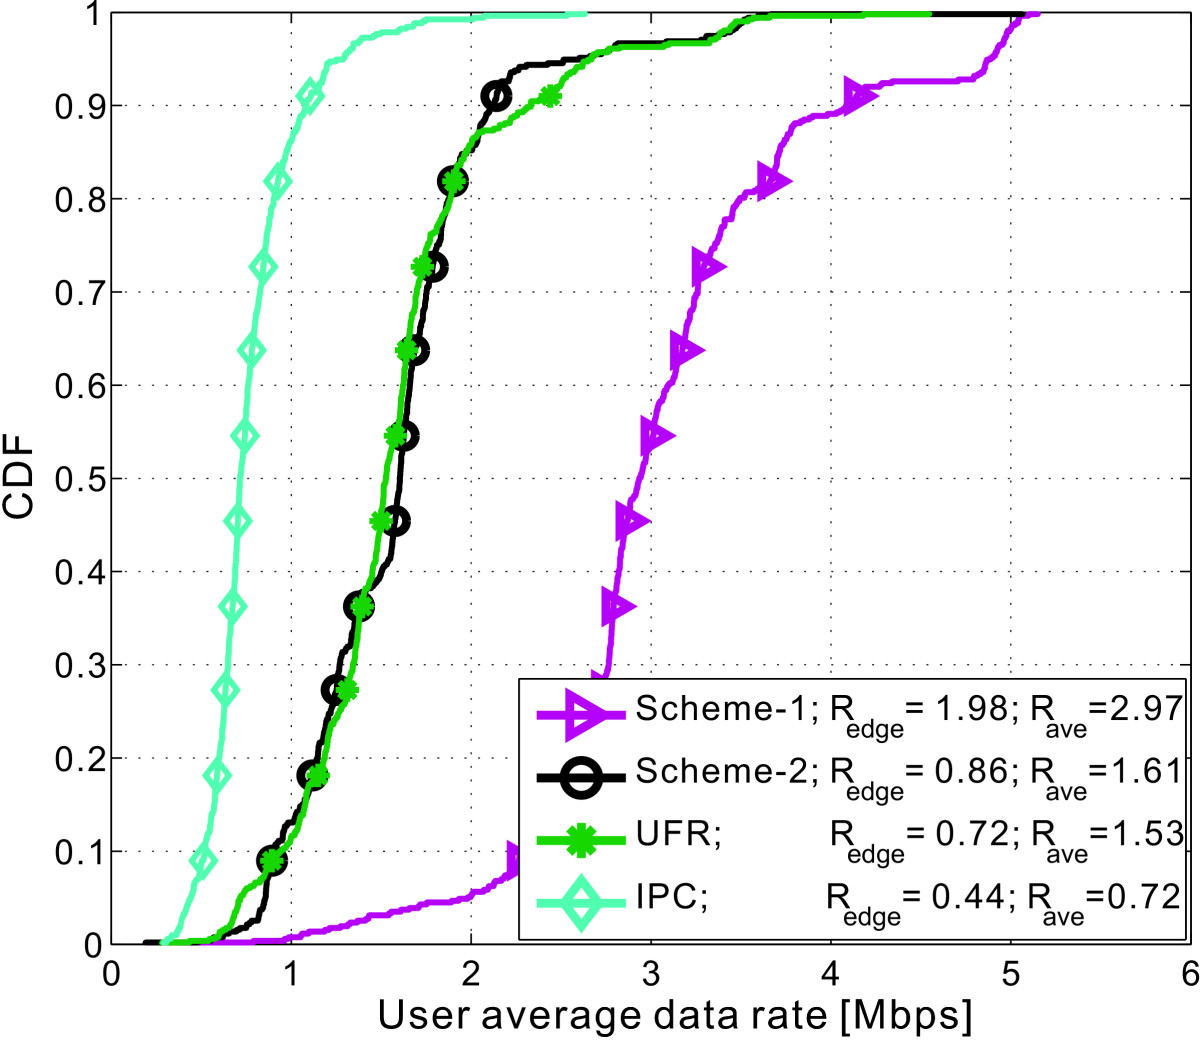 https://static-content.springer.com/image/art%3A10.1186%2F1687-1499-2012-175/MediaObjects/13638_2011_Article_368_Fig11_HTML.jpg